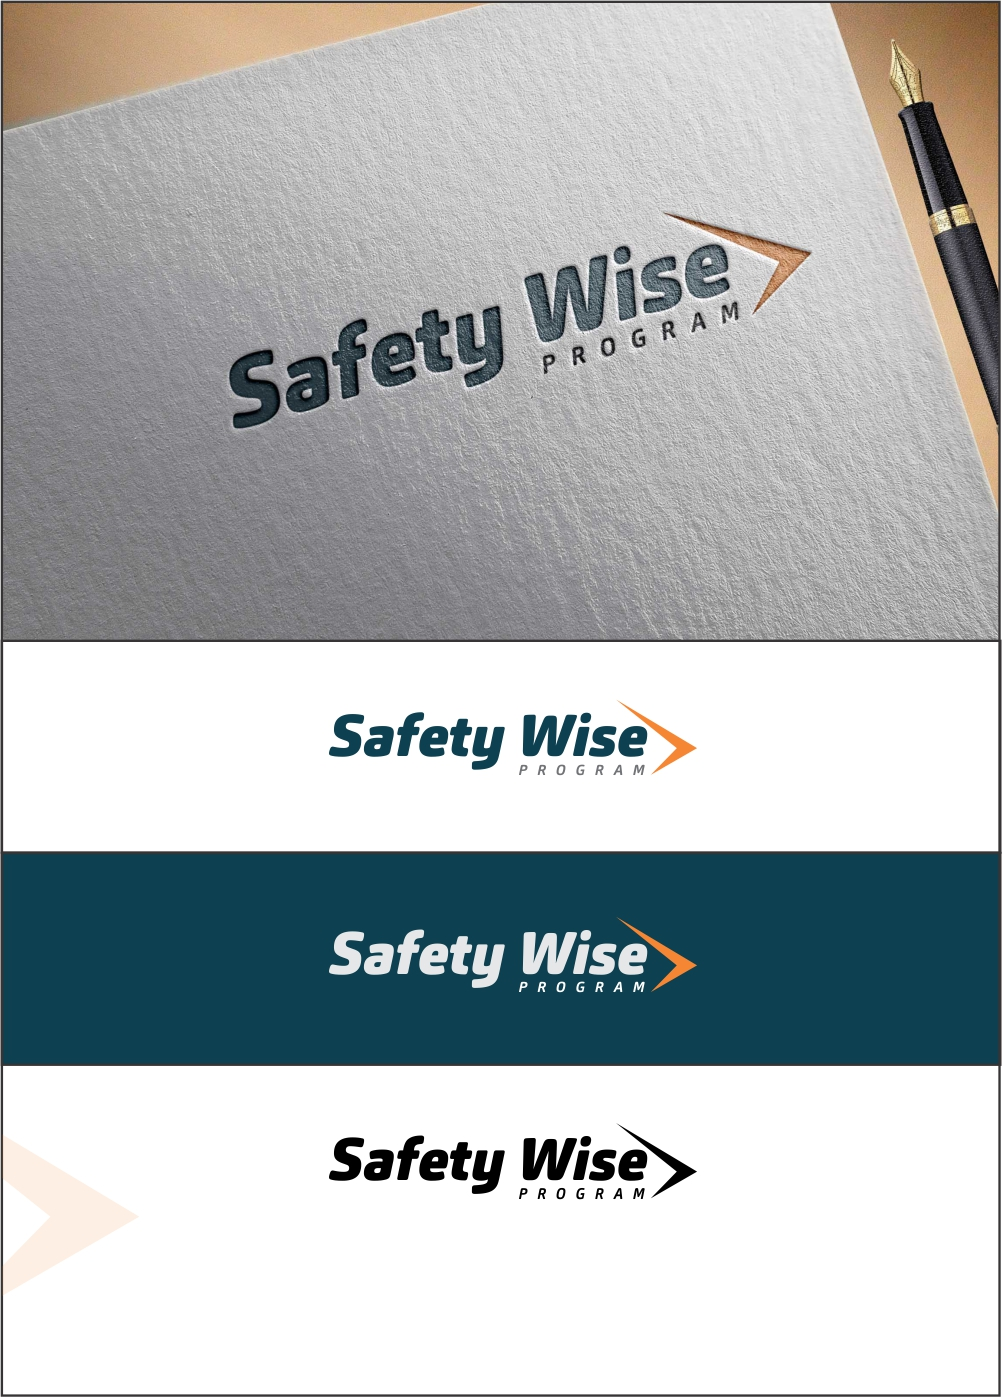 Logo Design by ian69 - Entry No. 152 in the Logo Design Contest New Logo Design for Safety Wise Program.